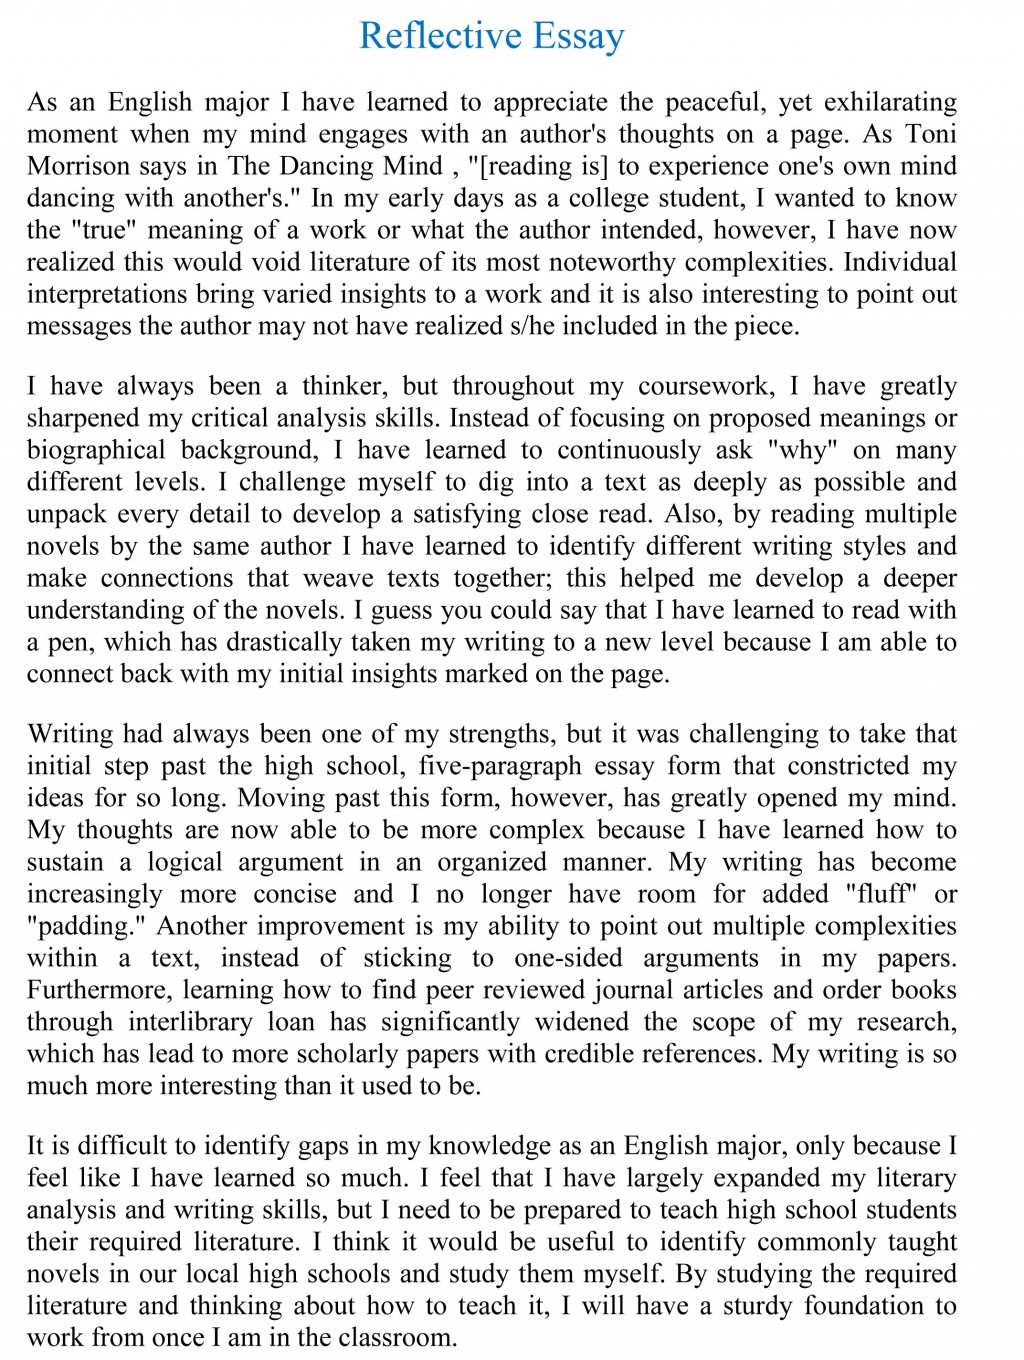 010 How To Start Reflective Essay Surprising A Write Good Introduction Begin Large